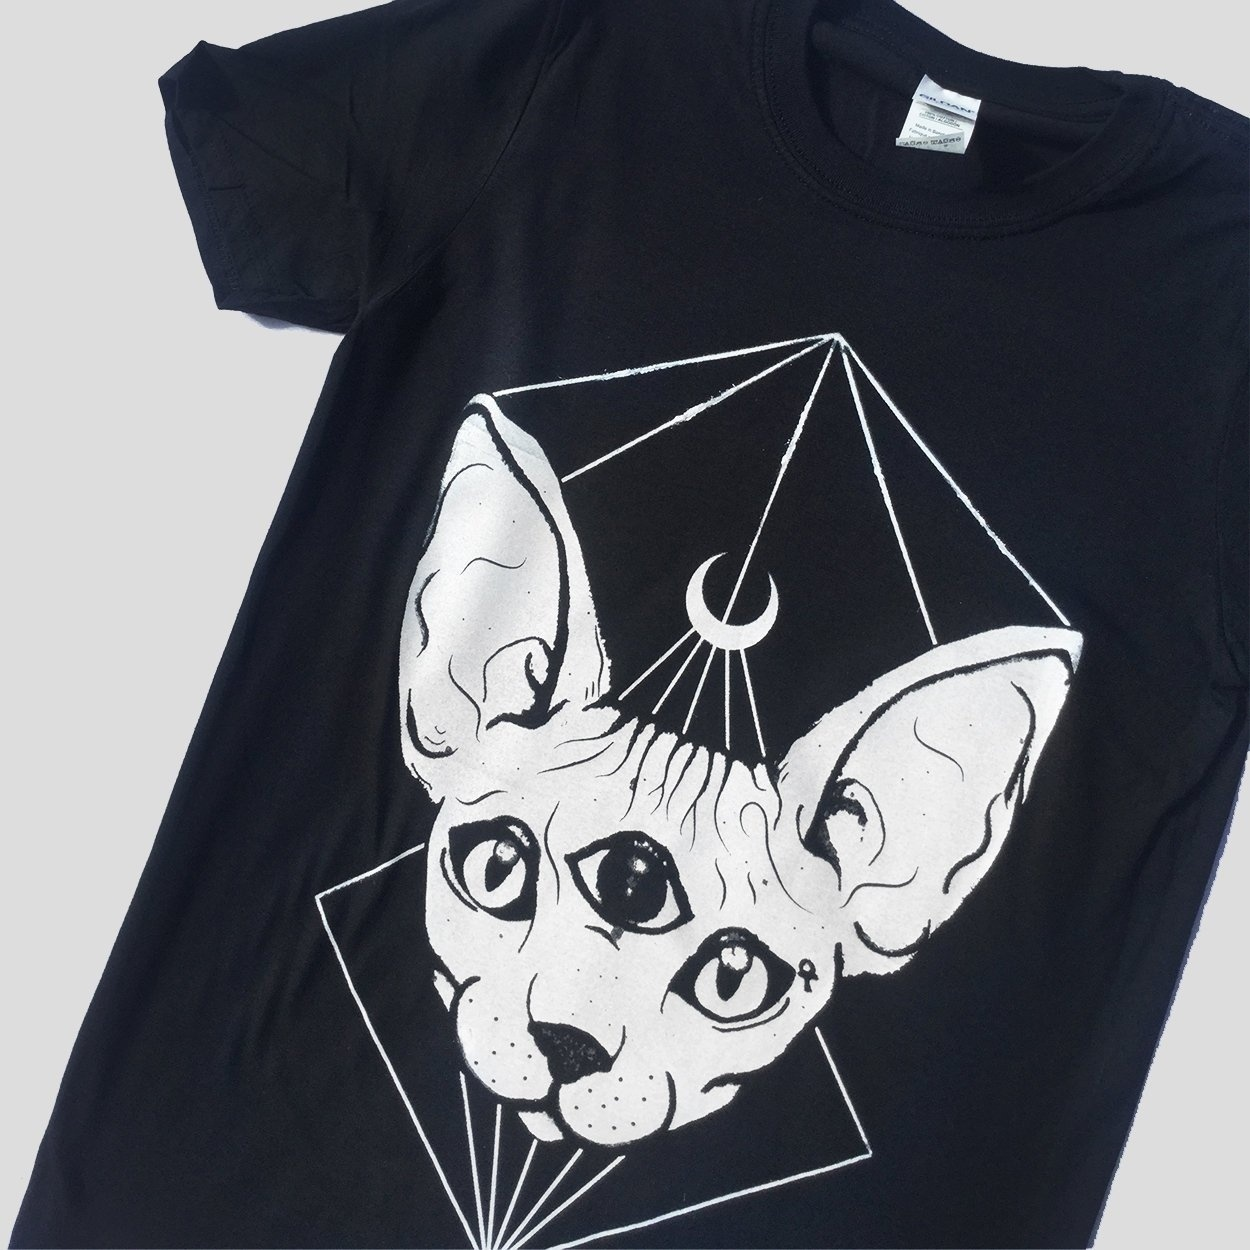 Kuakuayu HJN Punk Gothic Sphynx Cat Head Moon Printed T-shirts Black Witch Symbol Tshirts For Goth Girls Female Cotton Tee Tops